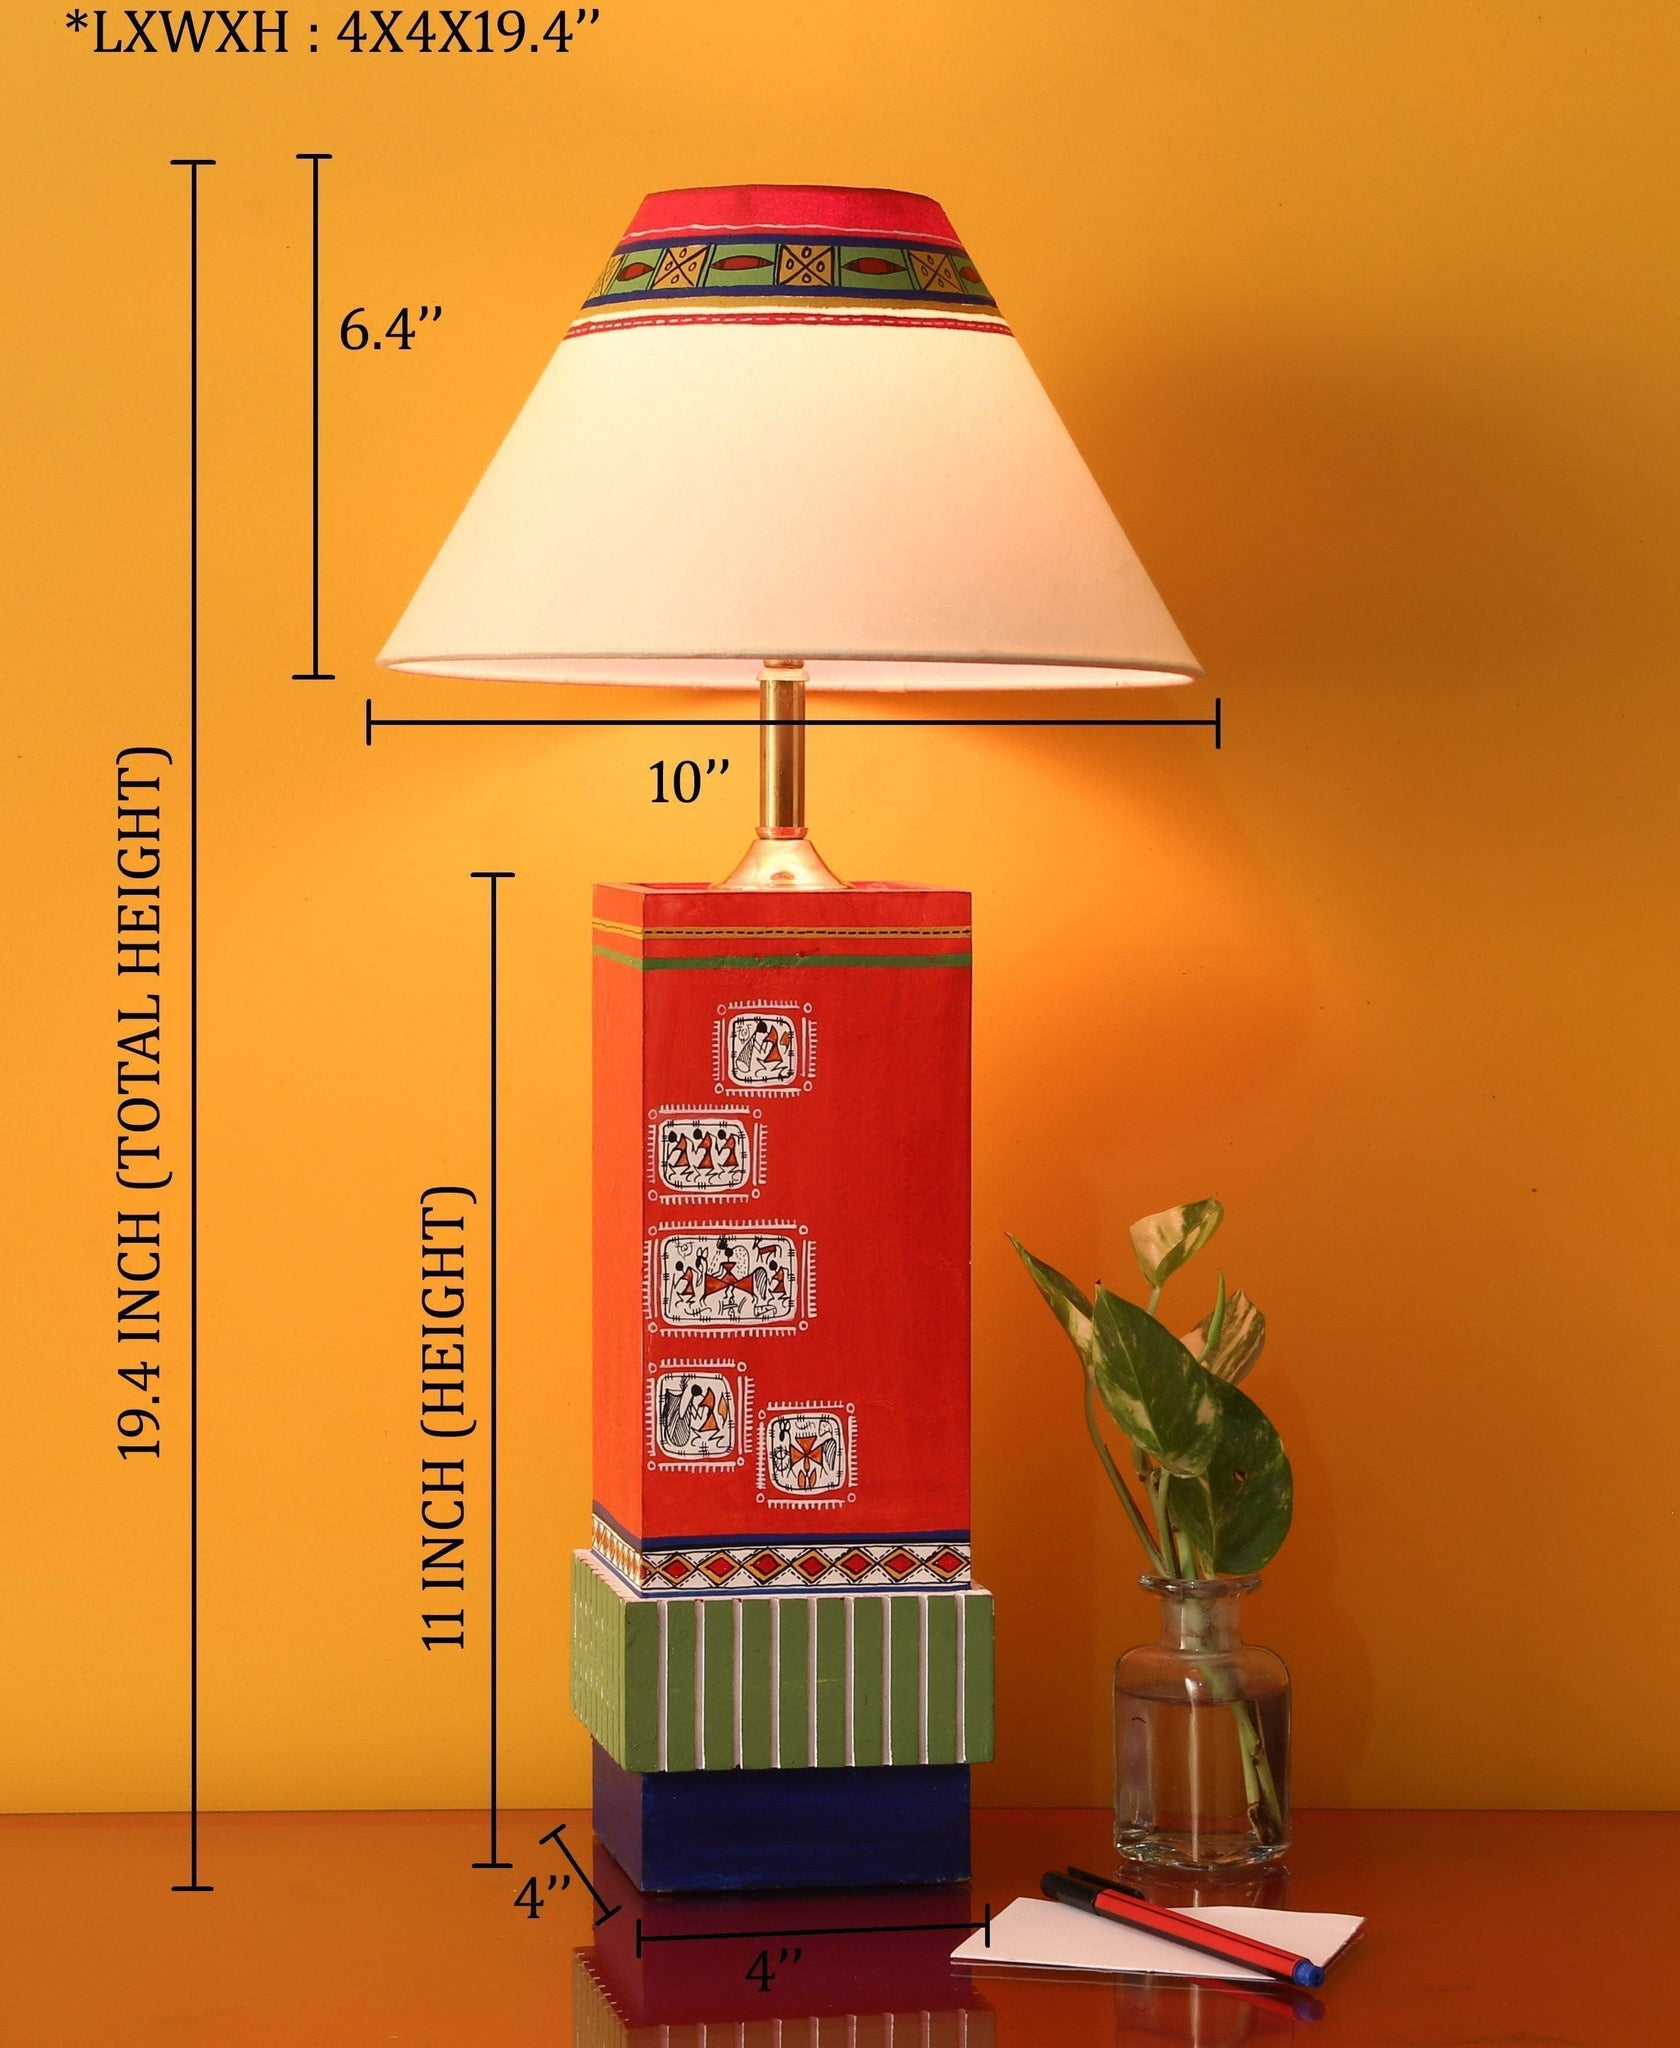 Multi Colored Hand Crafted Table Lamps With Shade For Bedroom